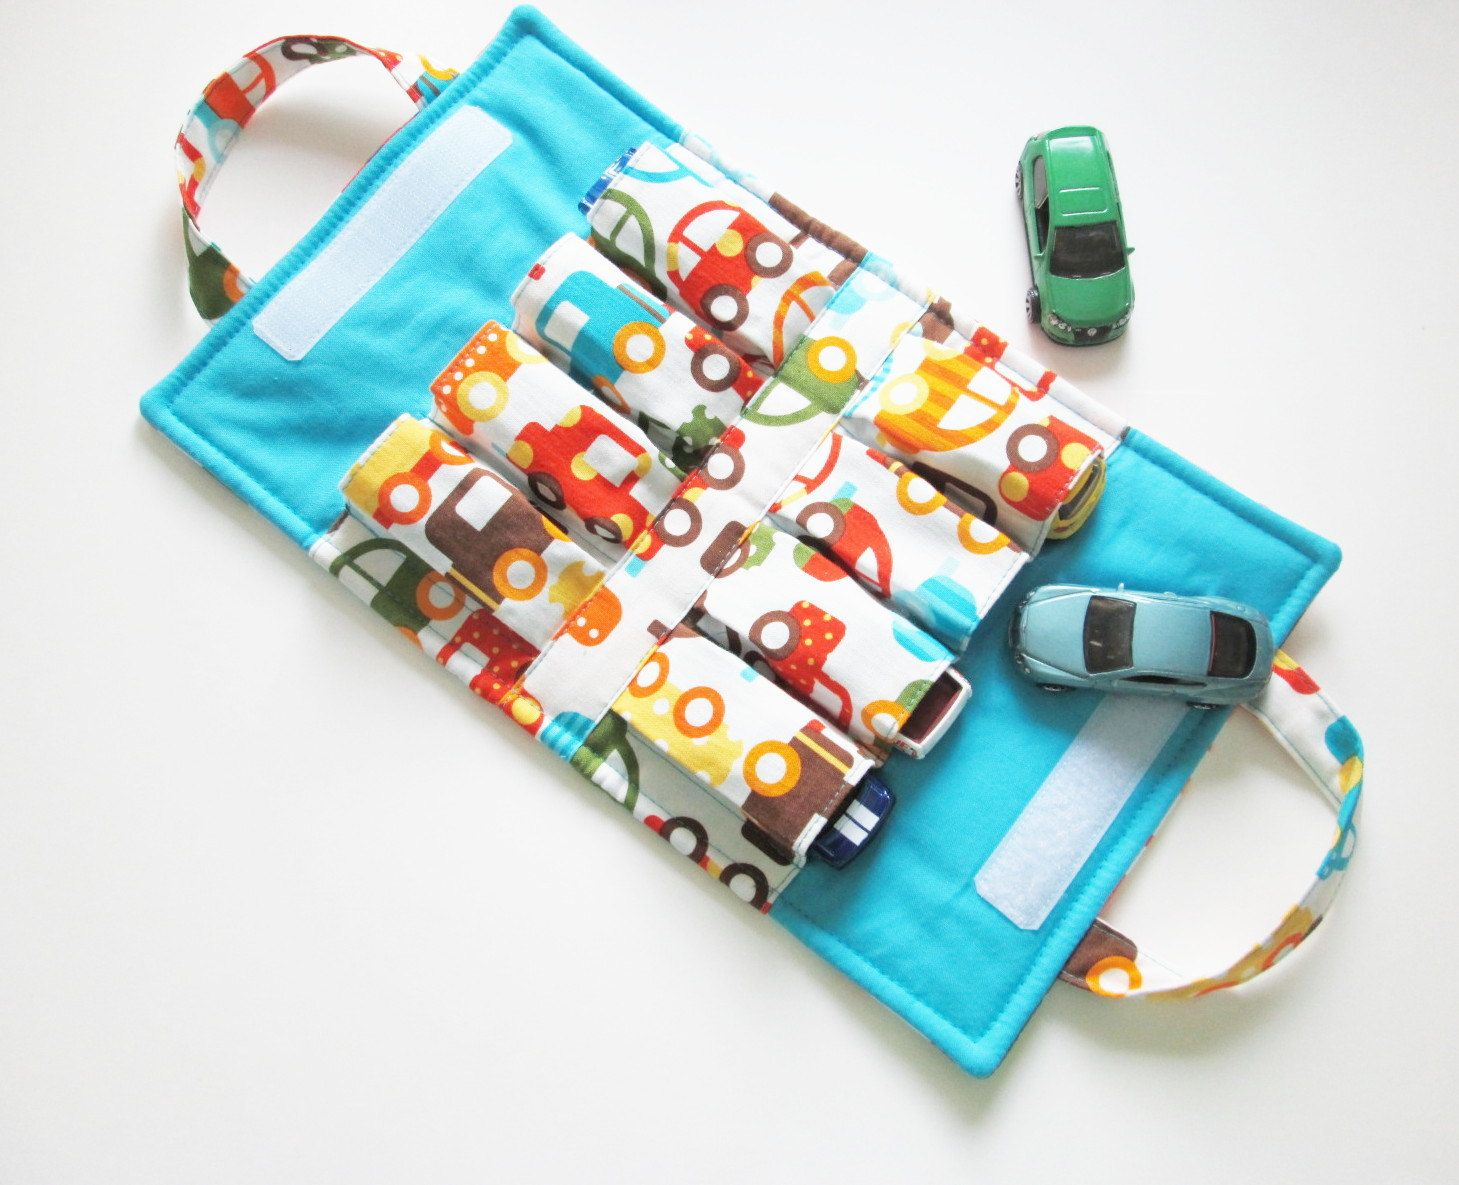 Toys cars pics  Toy Car TOTE  Holds   Kid Car  via Etsy  For Hudson